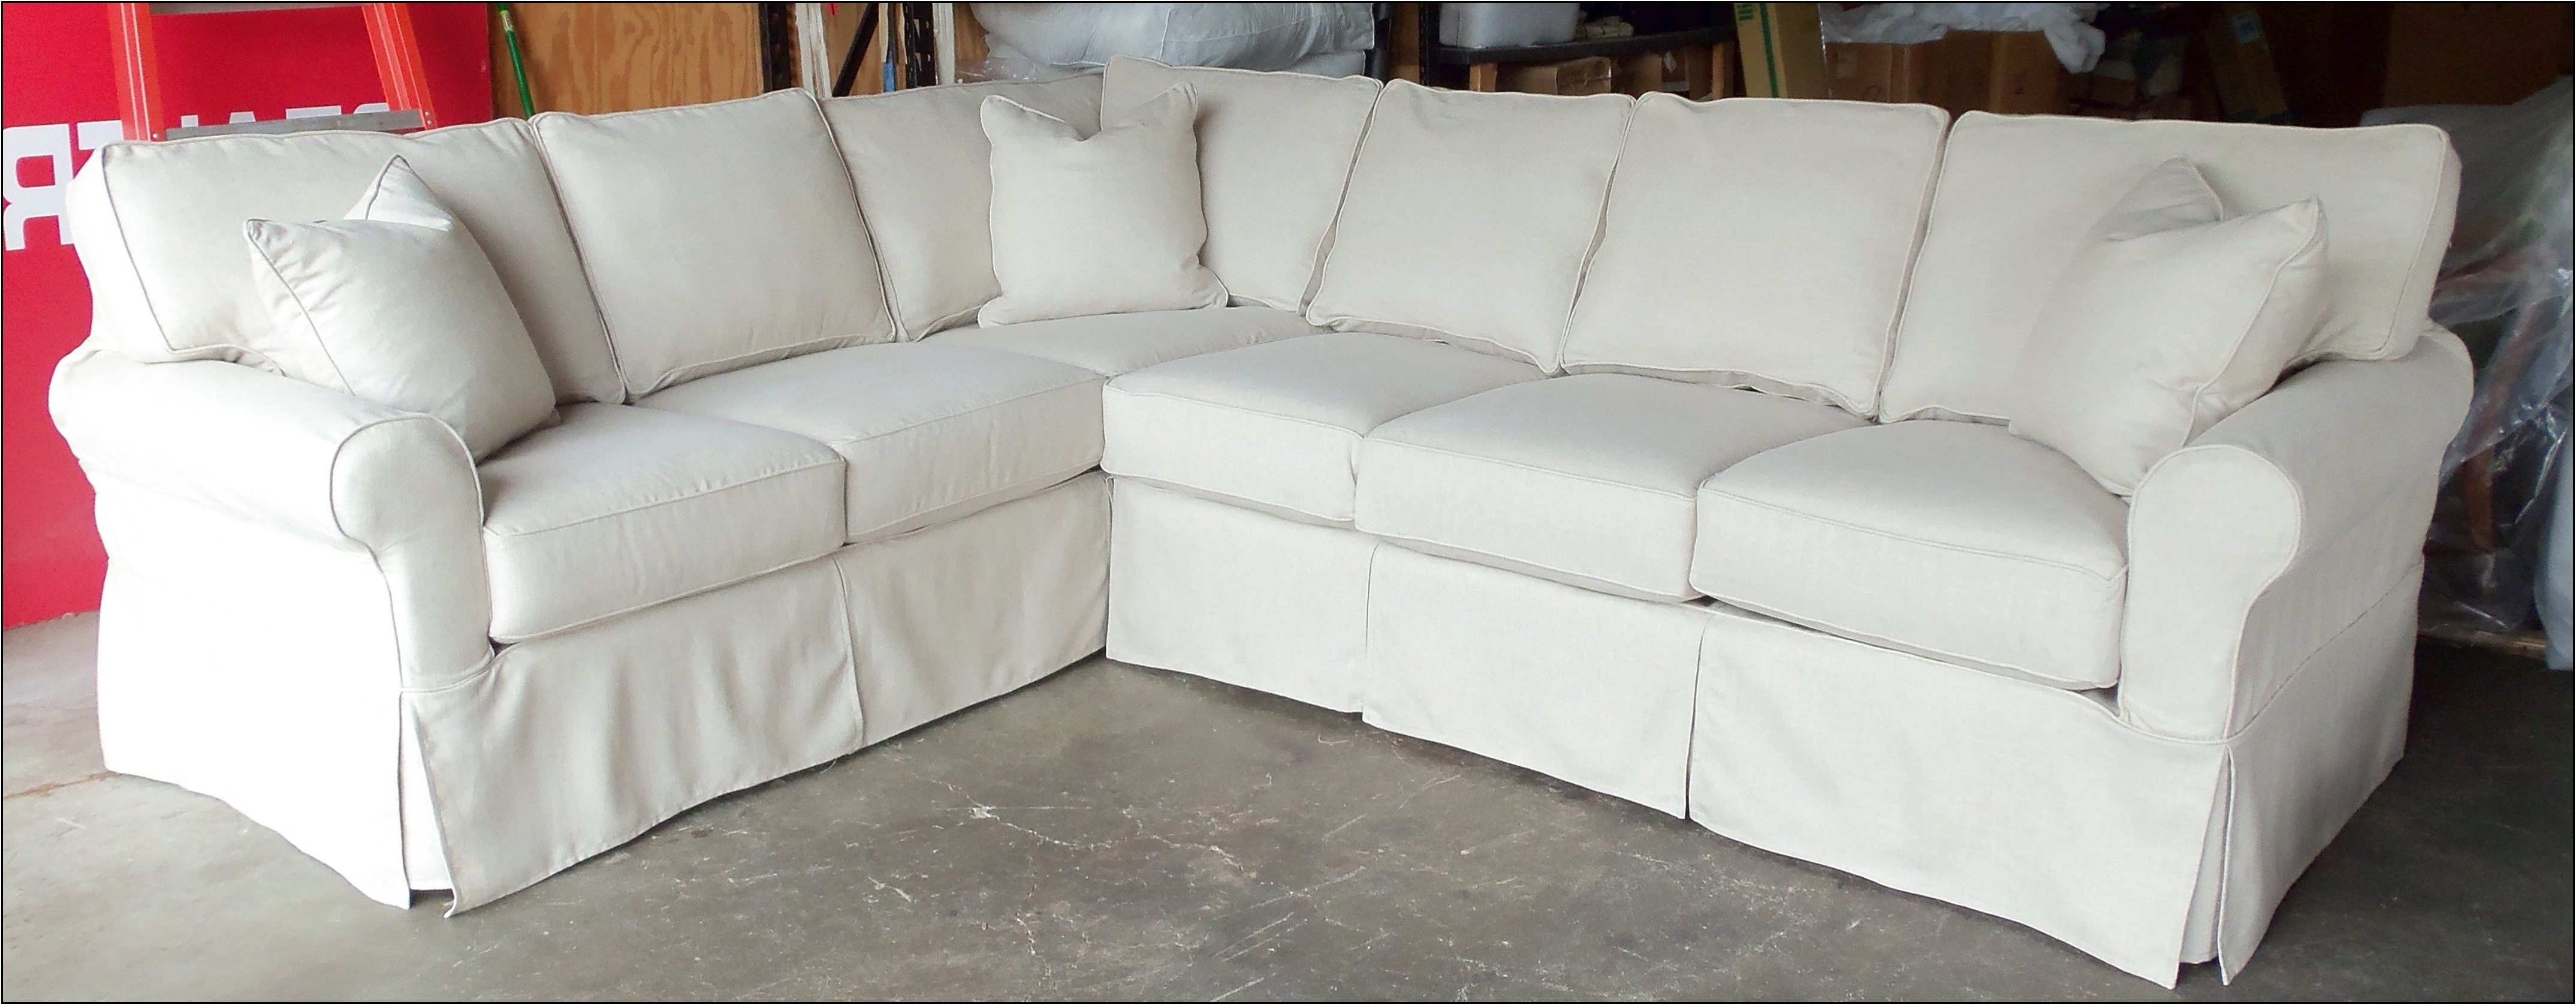 Removable Covers Sectional Sofas In Well Liked Cool Sectional Couch Cover , Best Sectional Couch Cover 72 For (View 10 of 15)